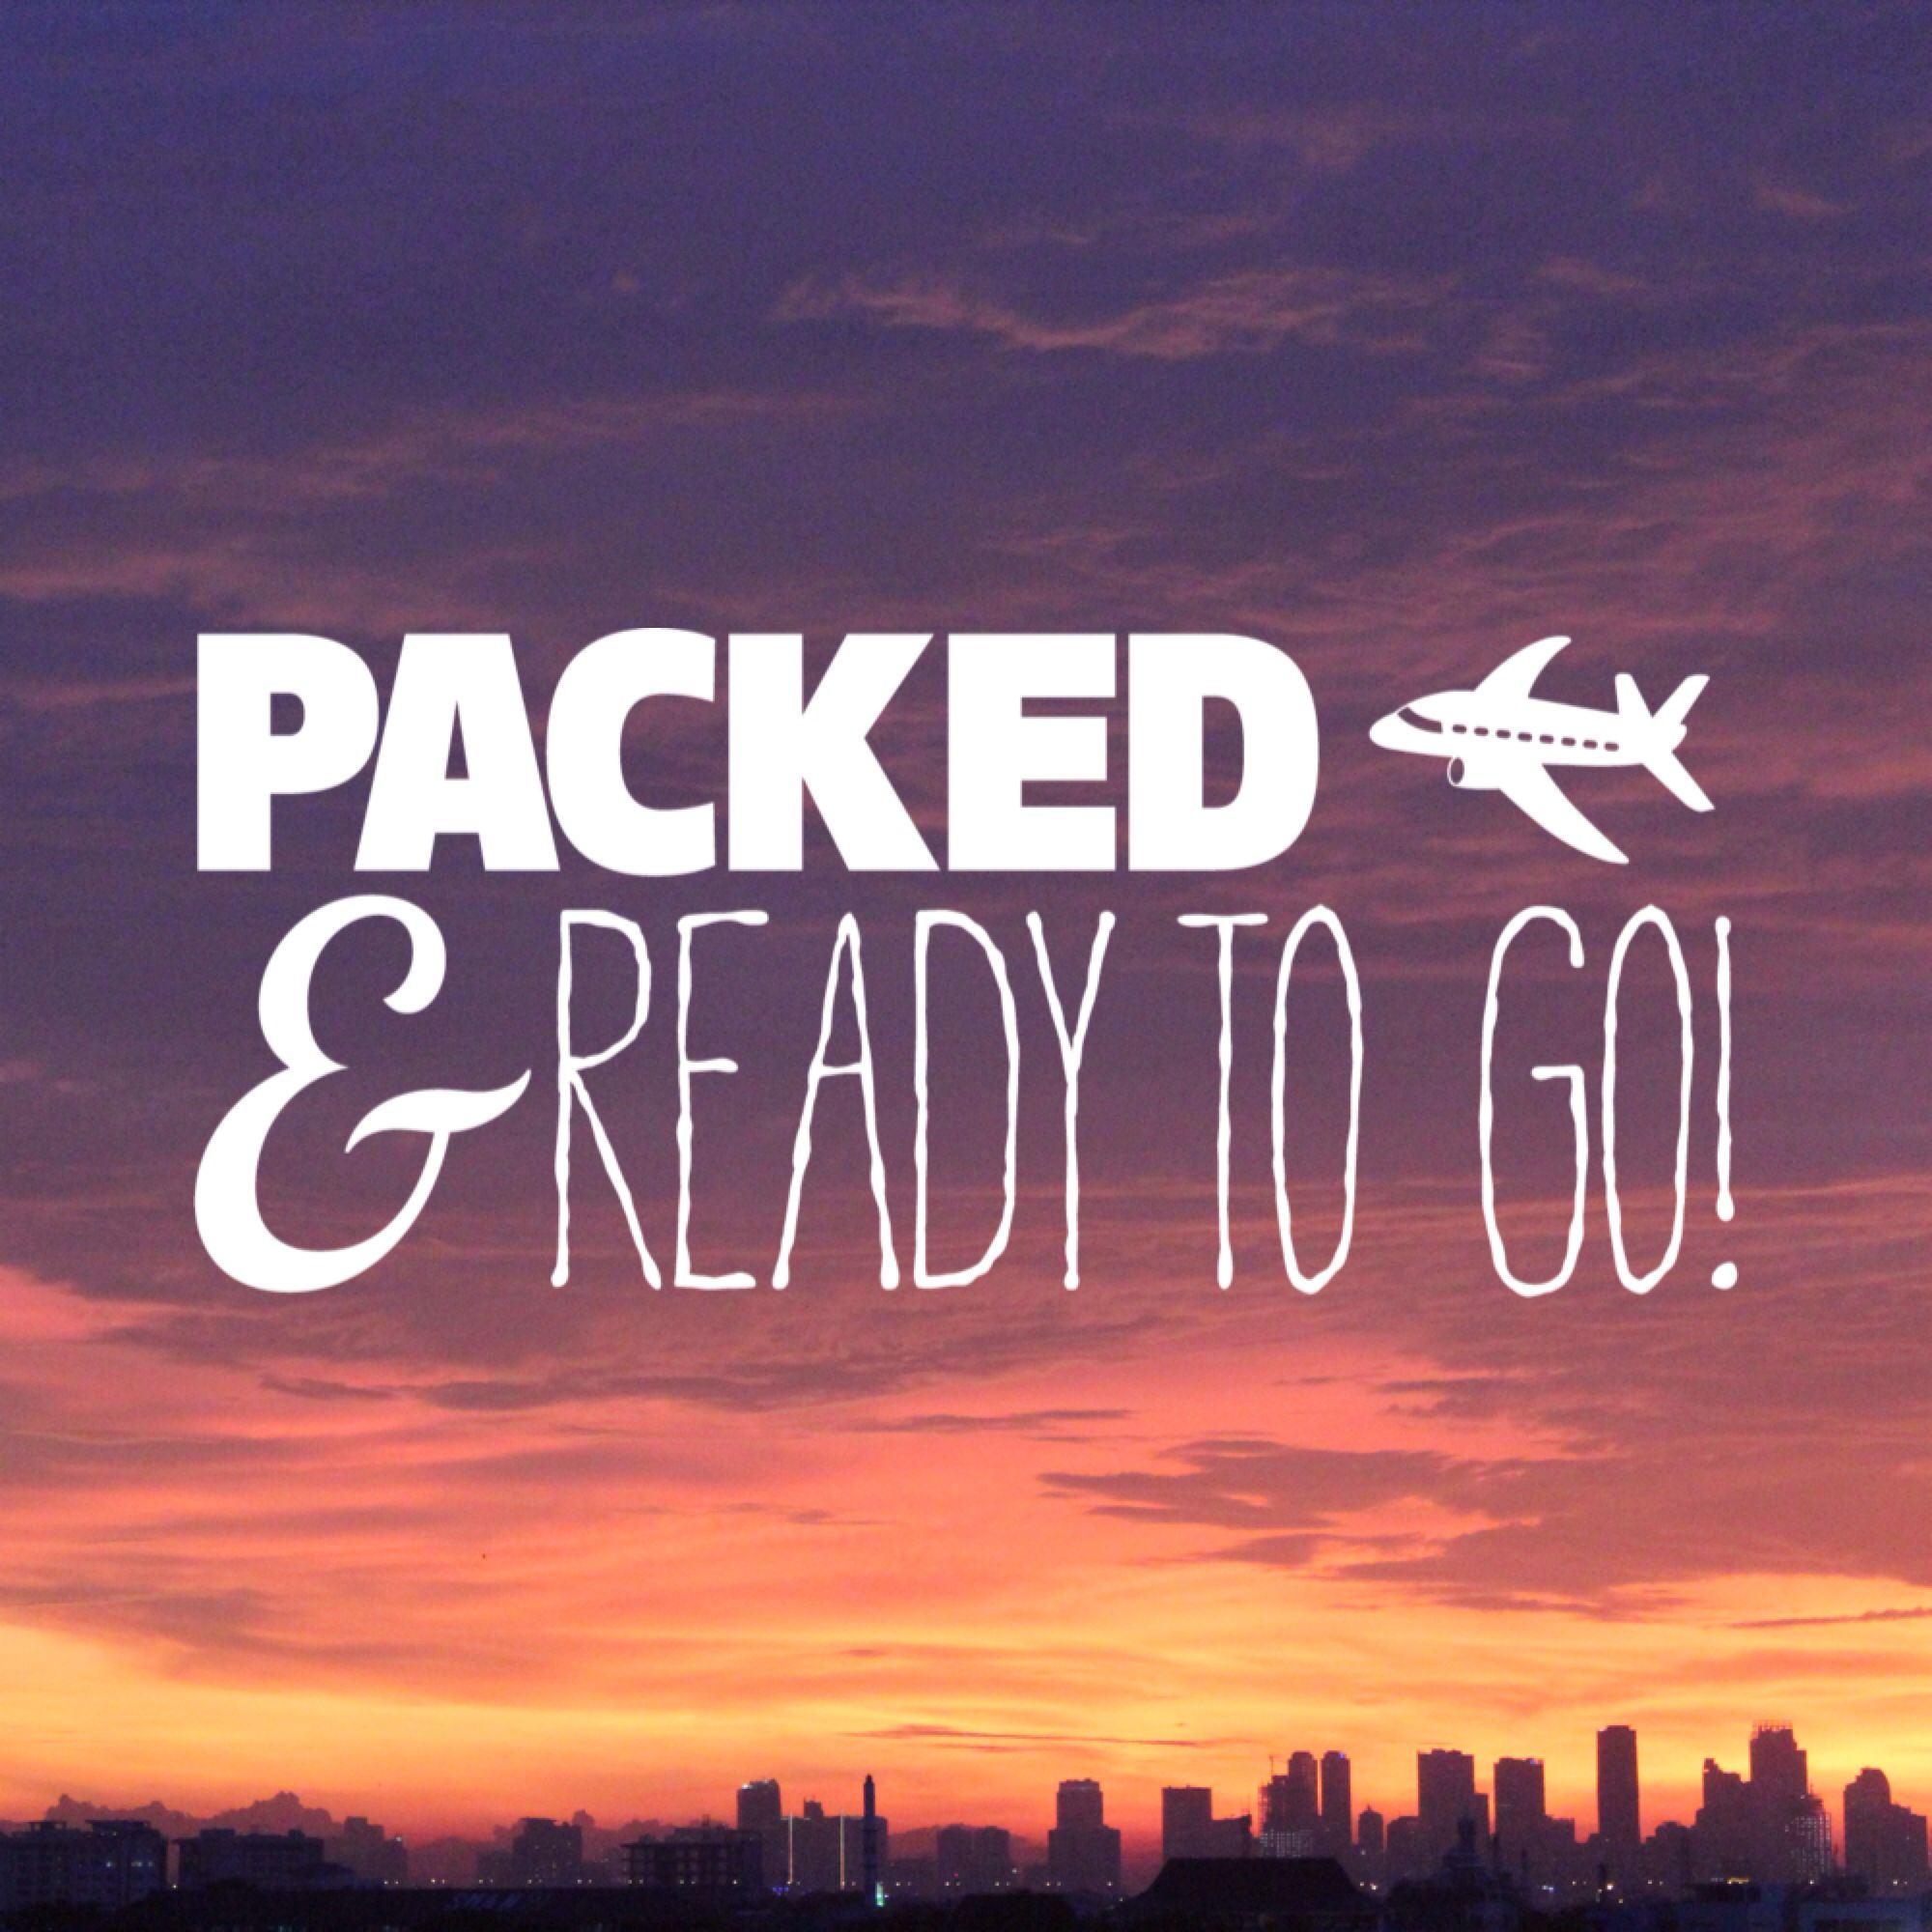 All my bags are packed! I\'m ready to go #vacation #travel ...